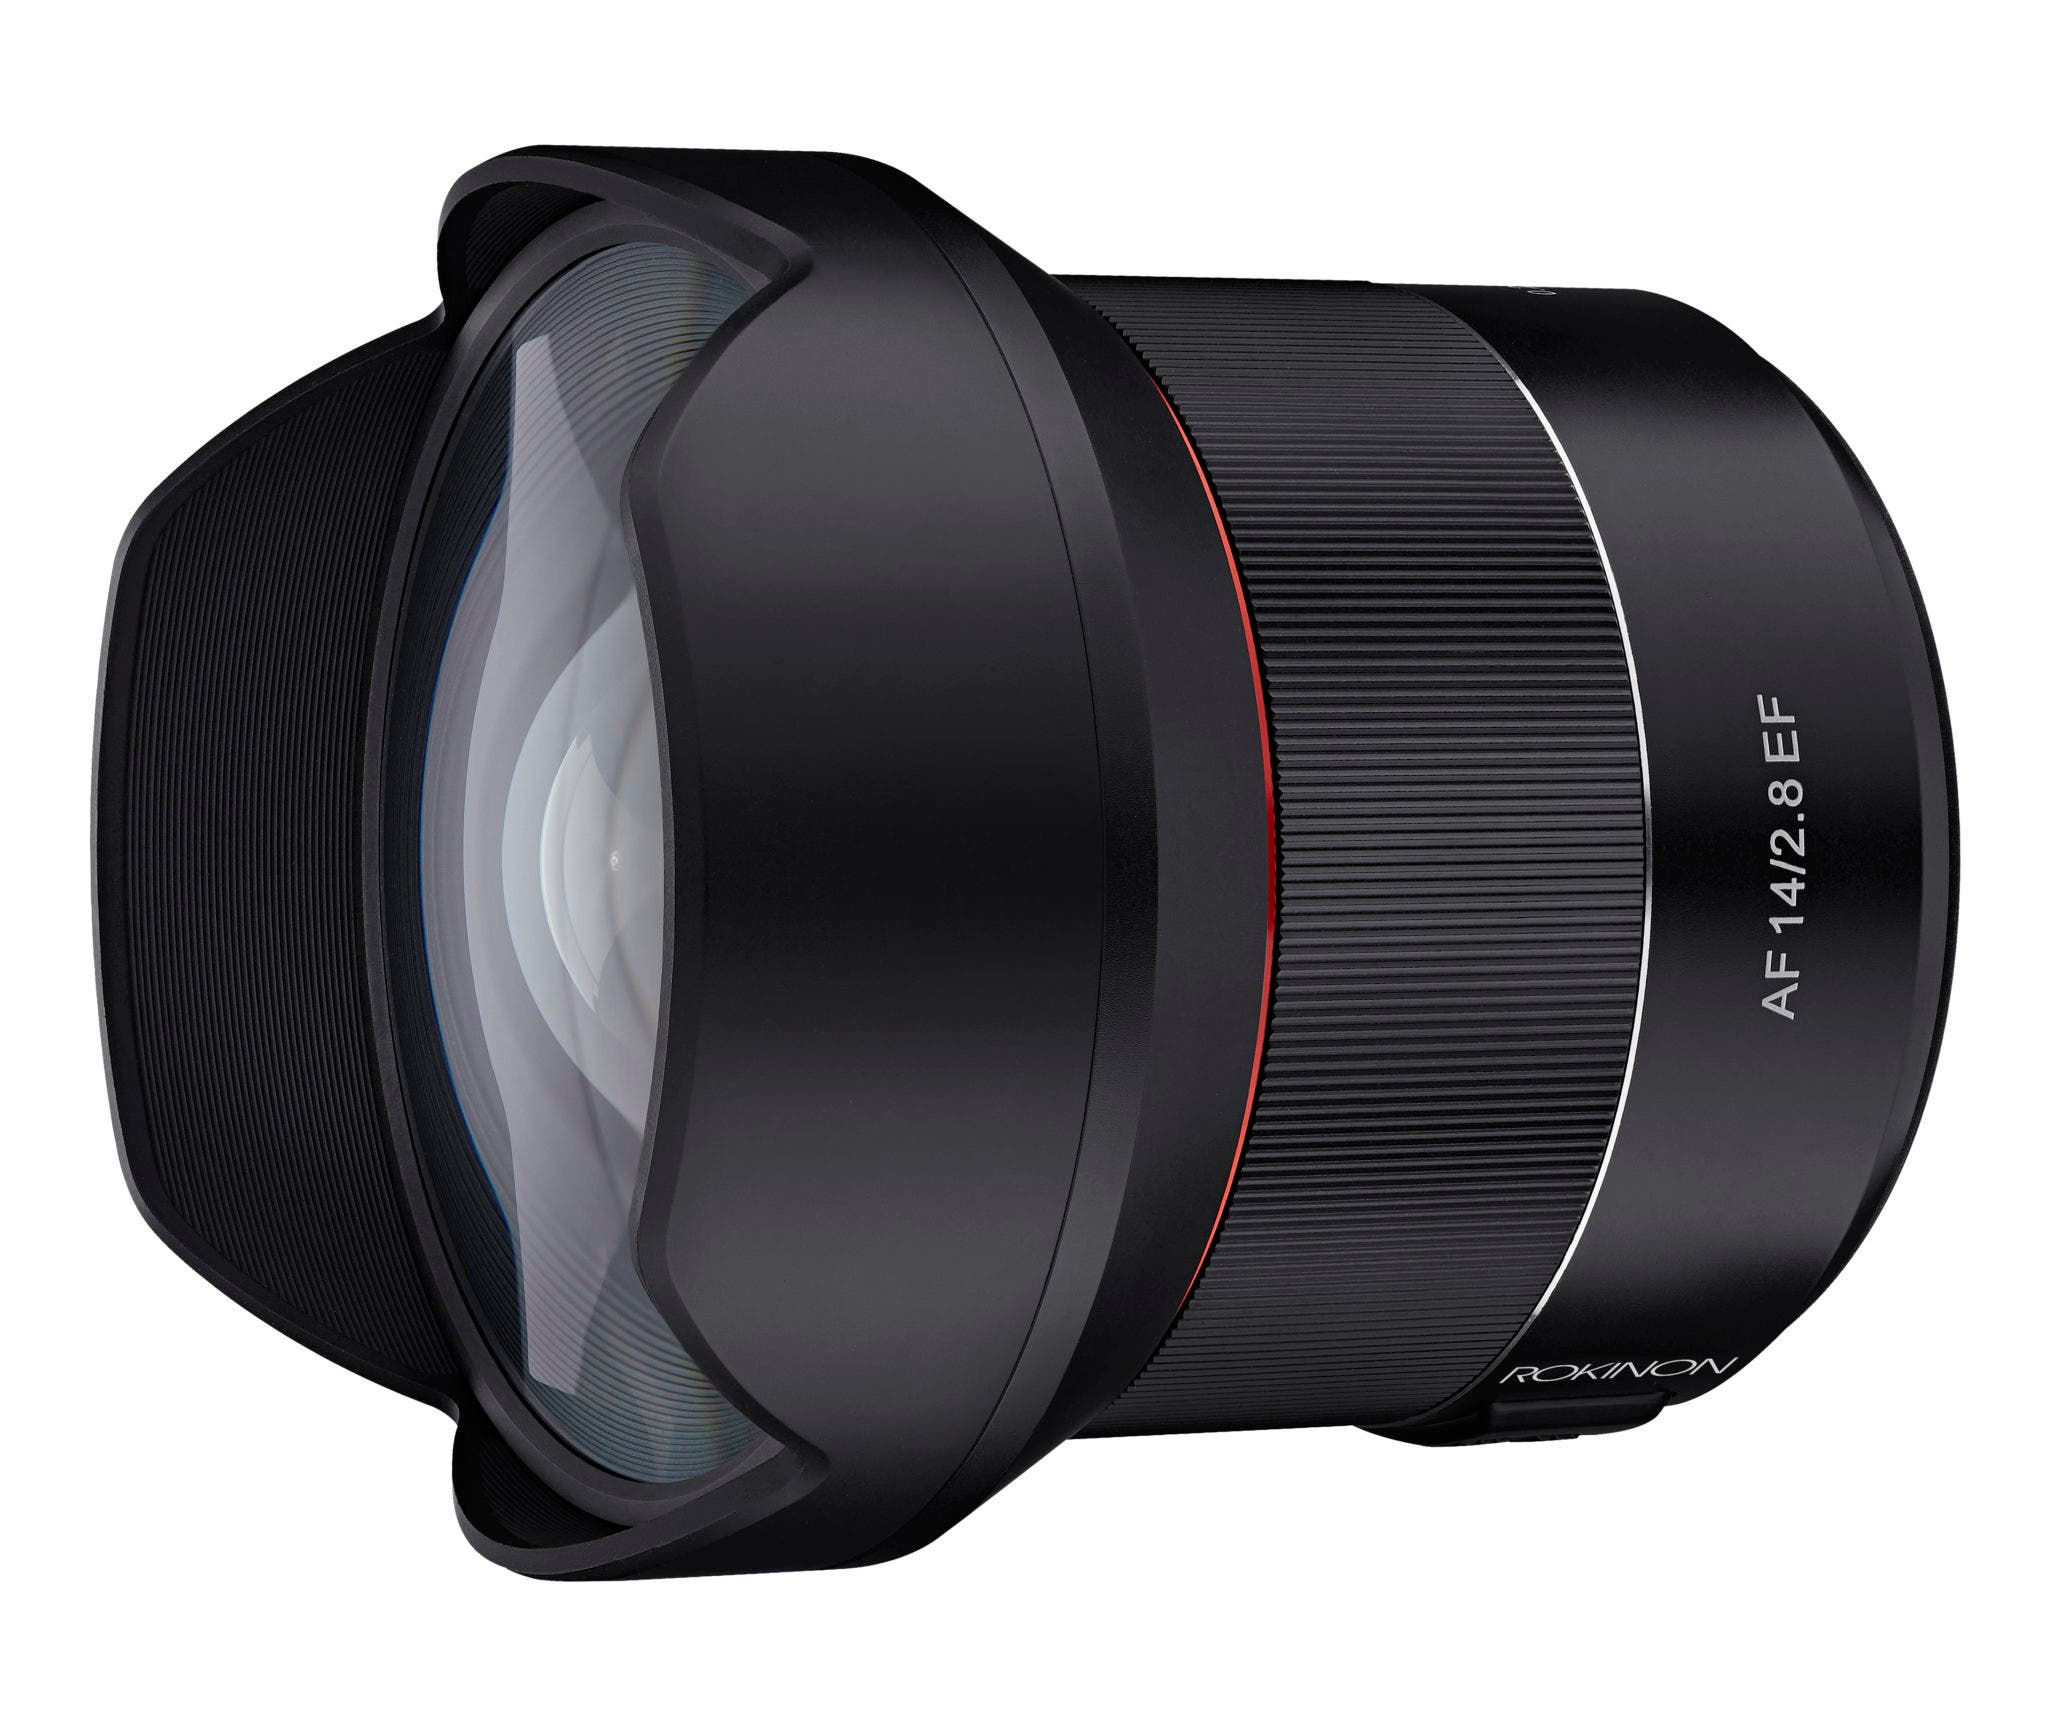 The Rokinon 14mm f2.8 AF has Autofocus and Weather Sealing